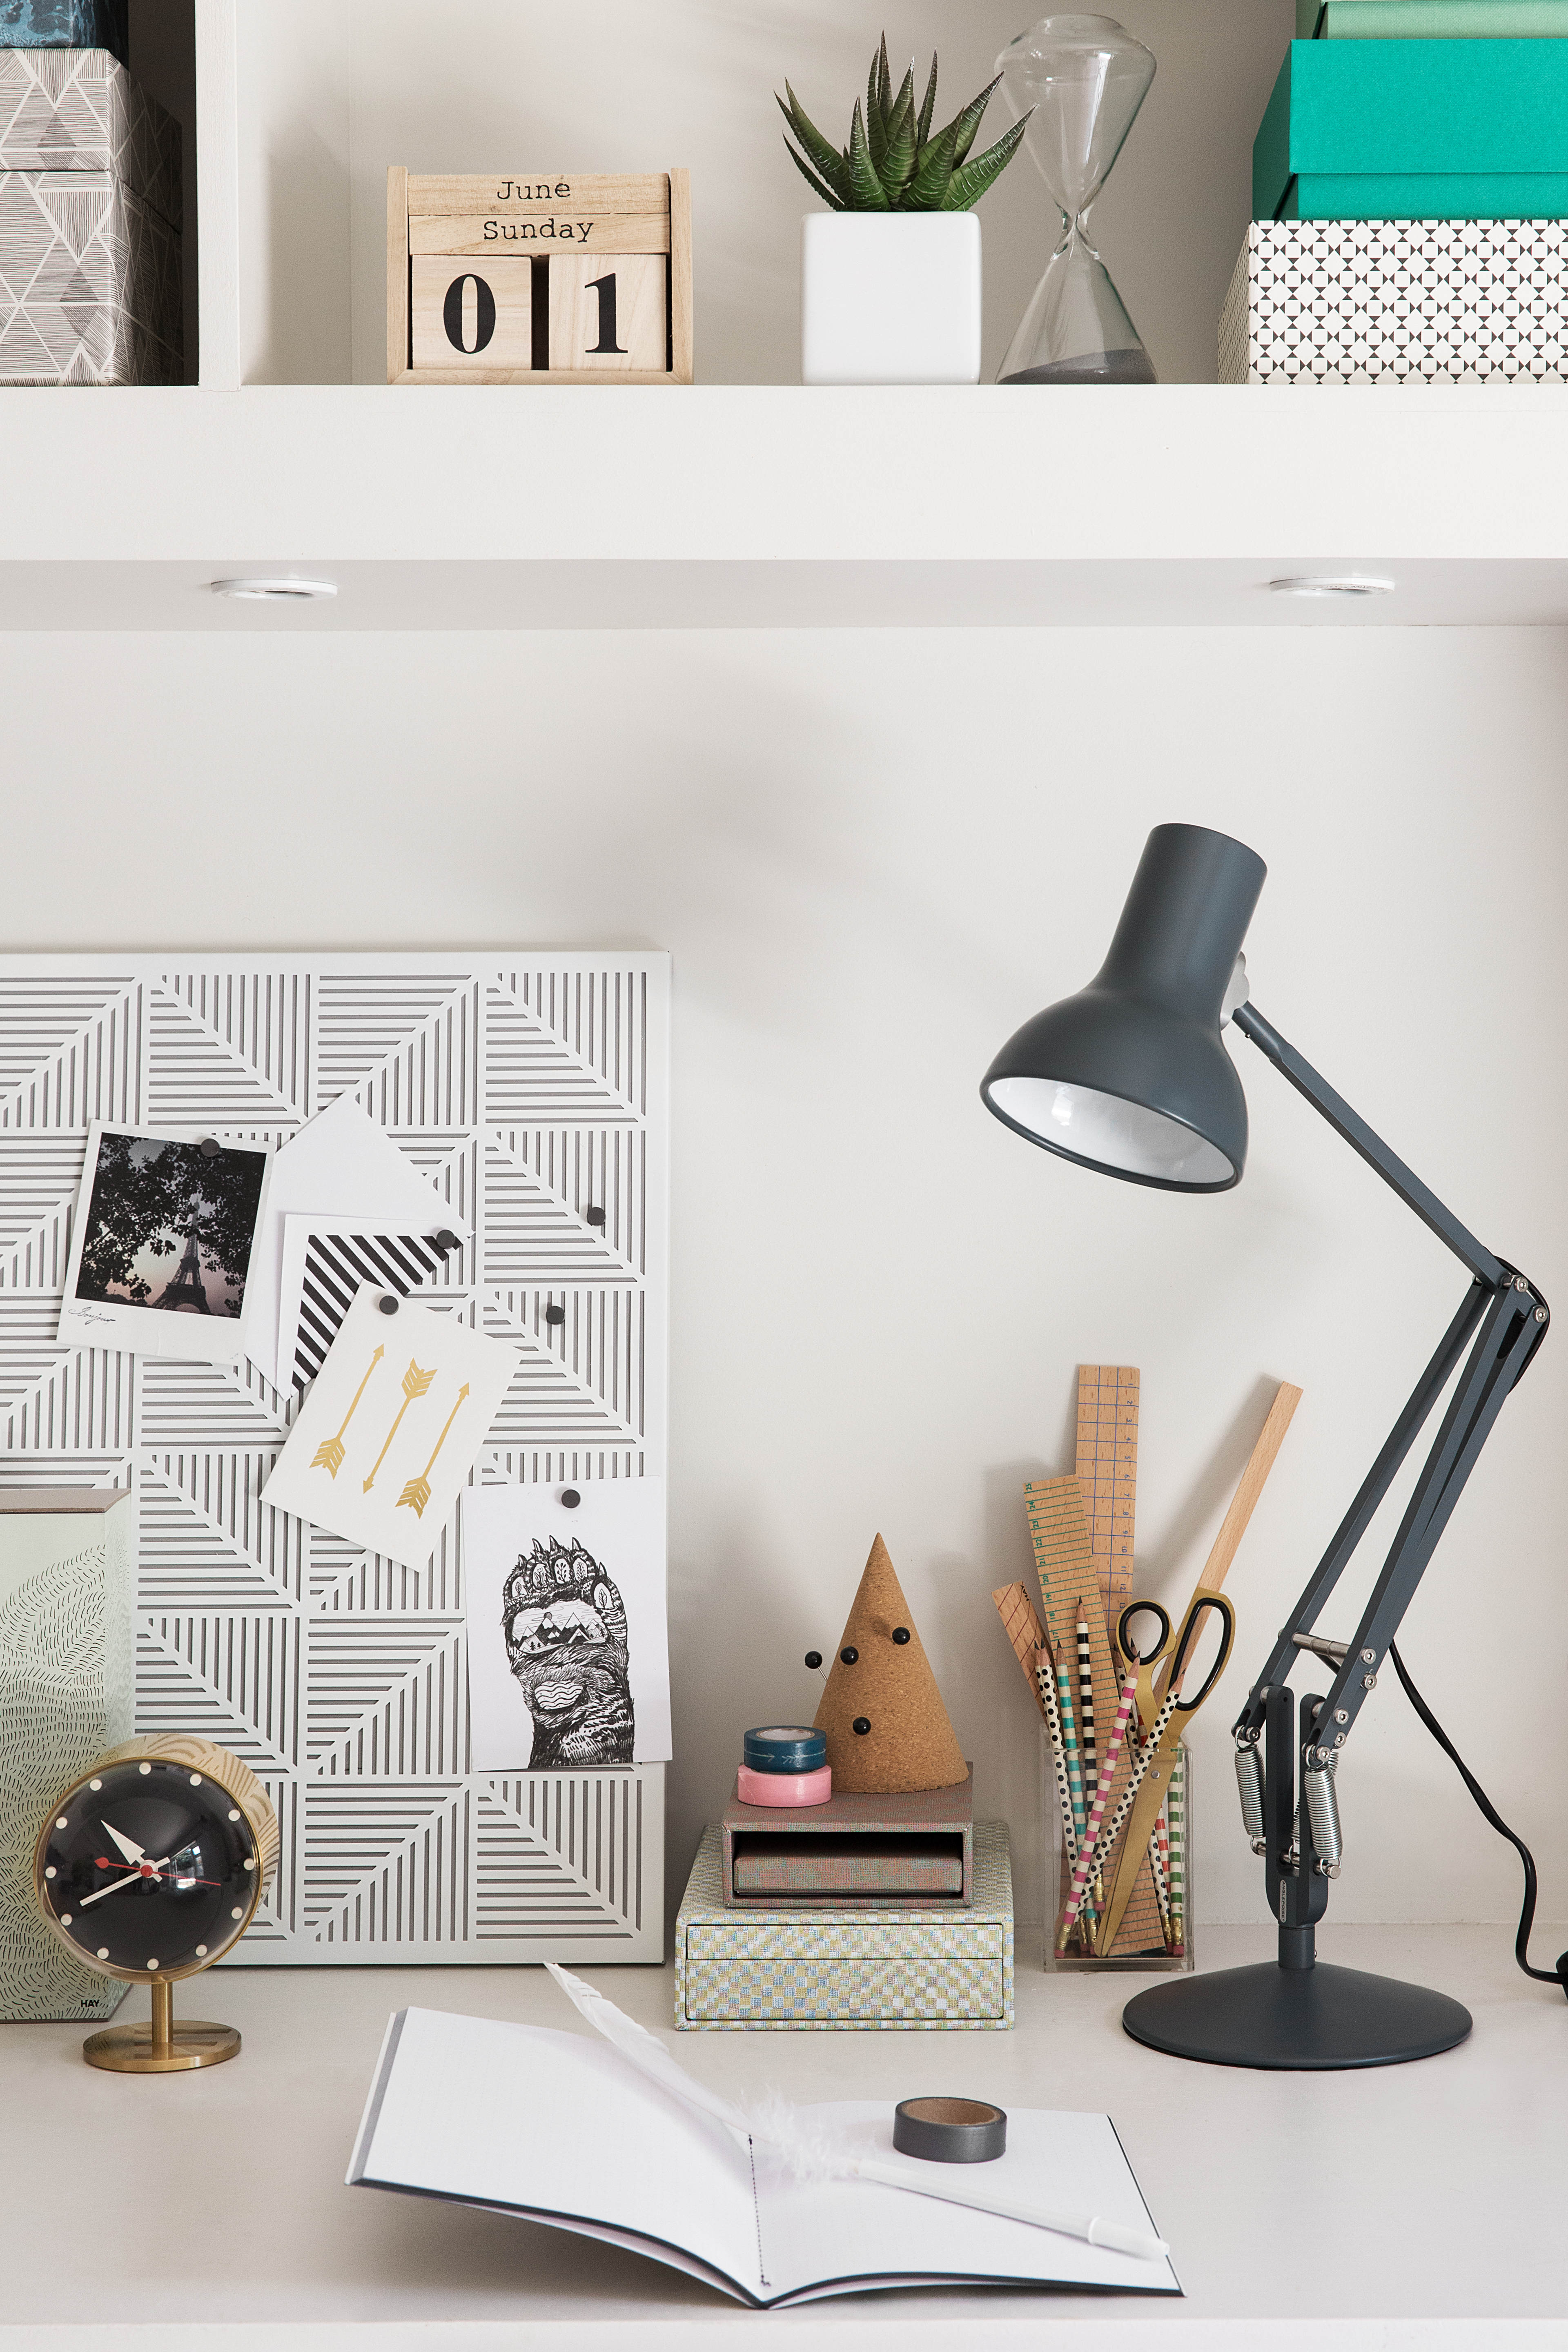 storage solutions for tidy desk